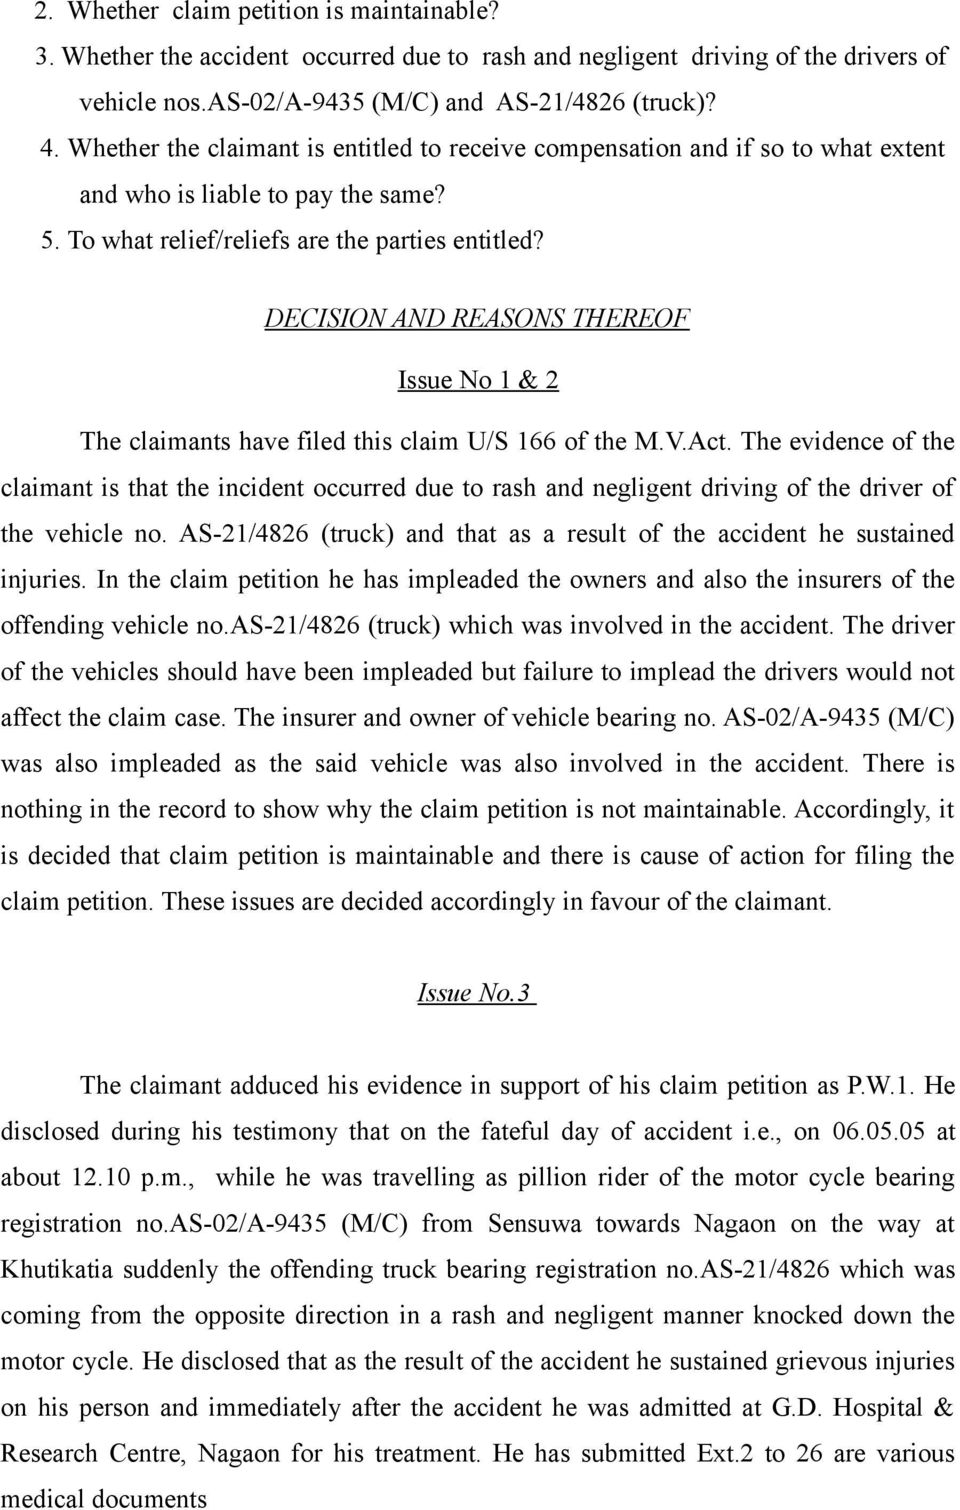 DECISION AND REASONS THEREOF Issue No 1 & 2 The claimants have filed this claim U/S 166 of the M.V.Act.